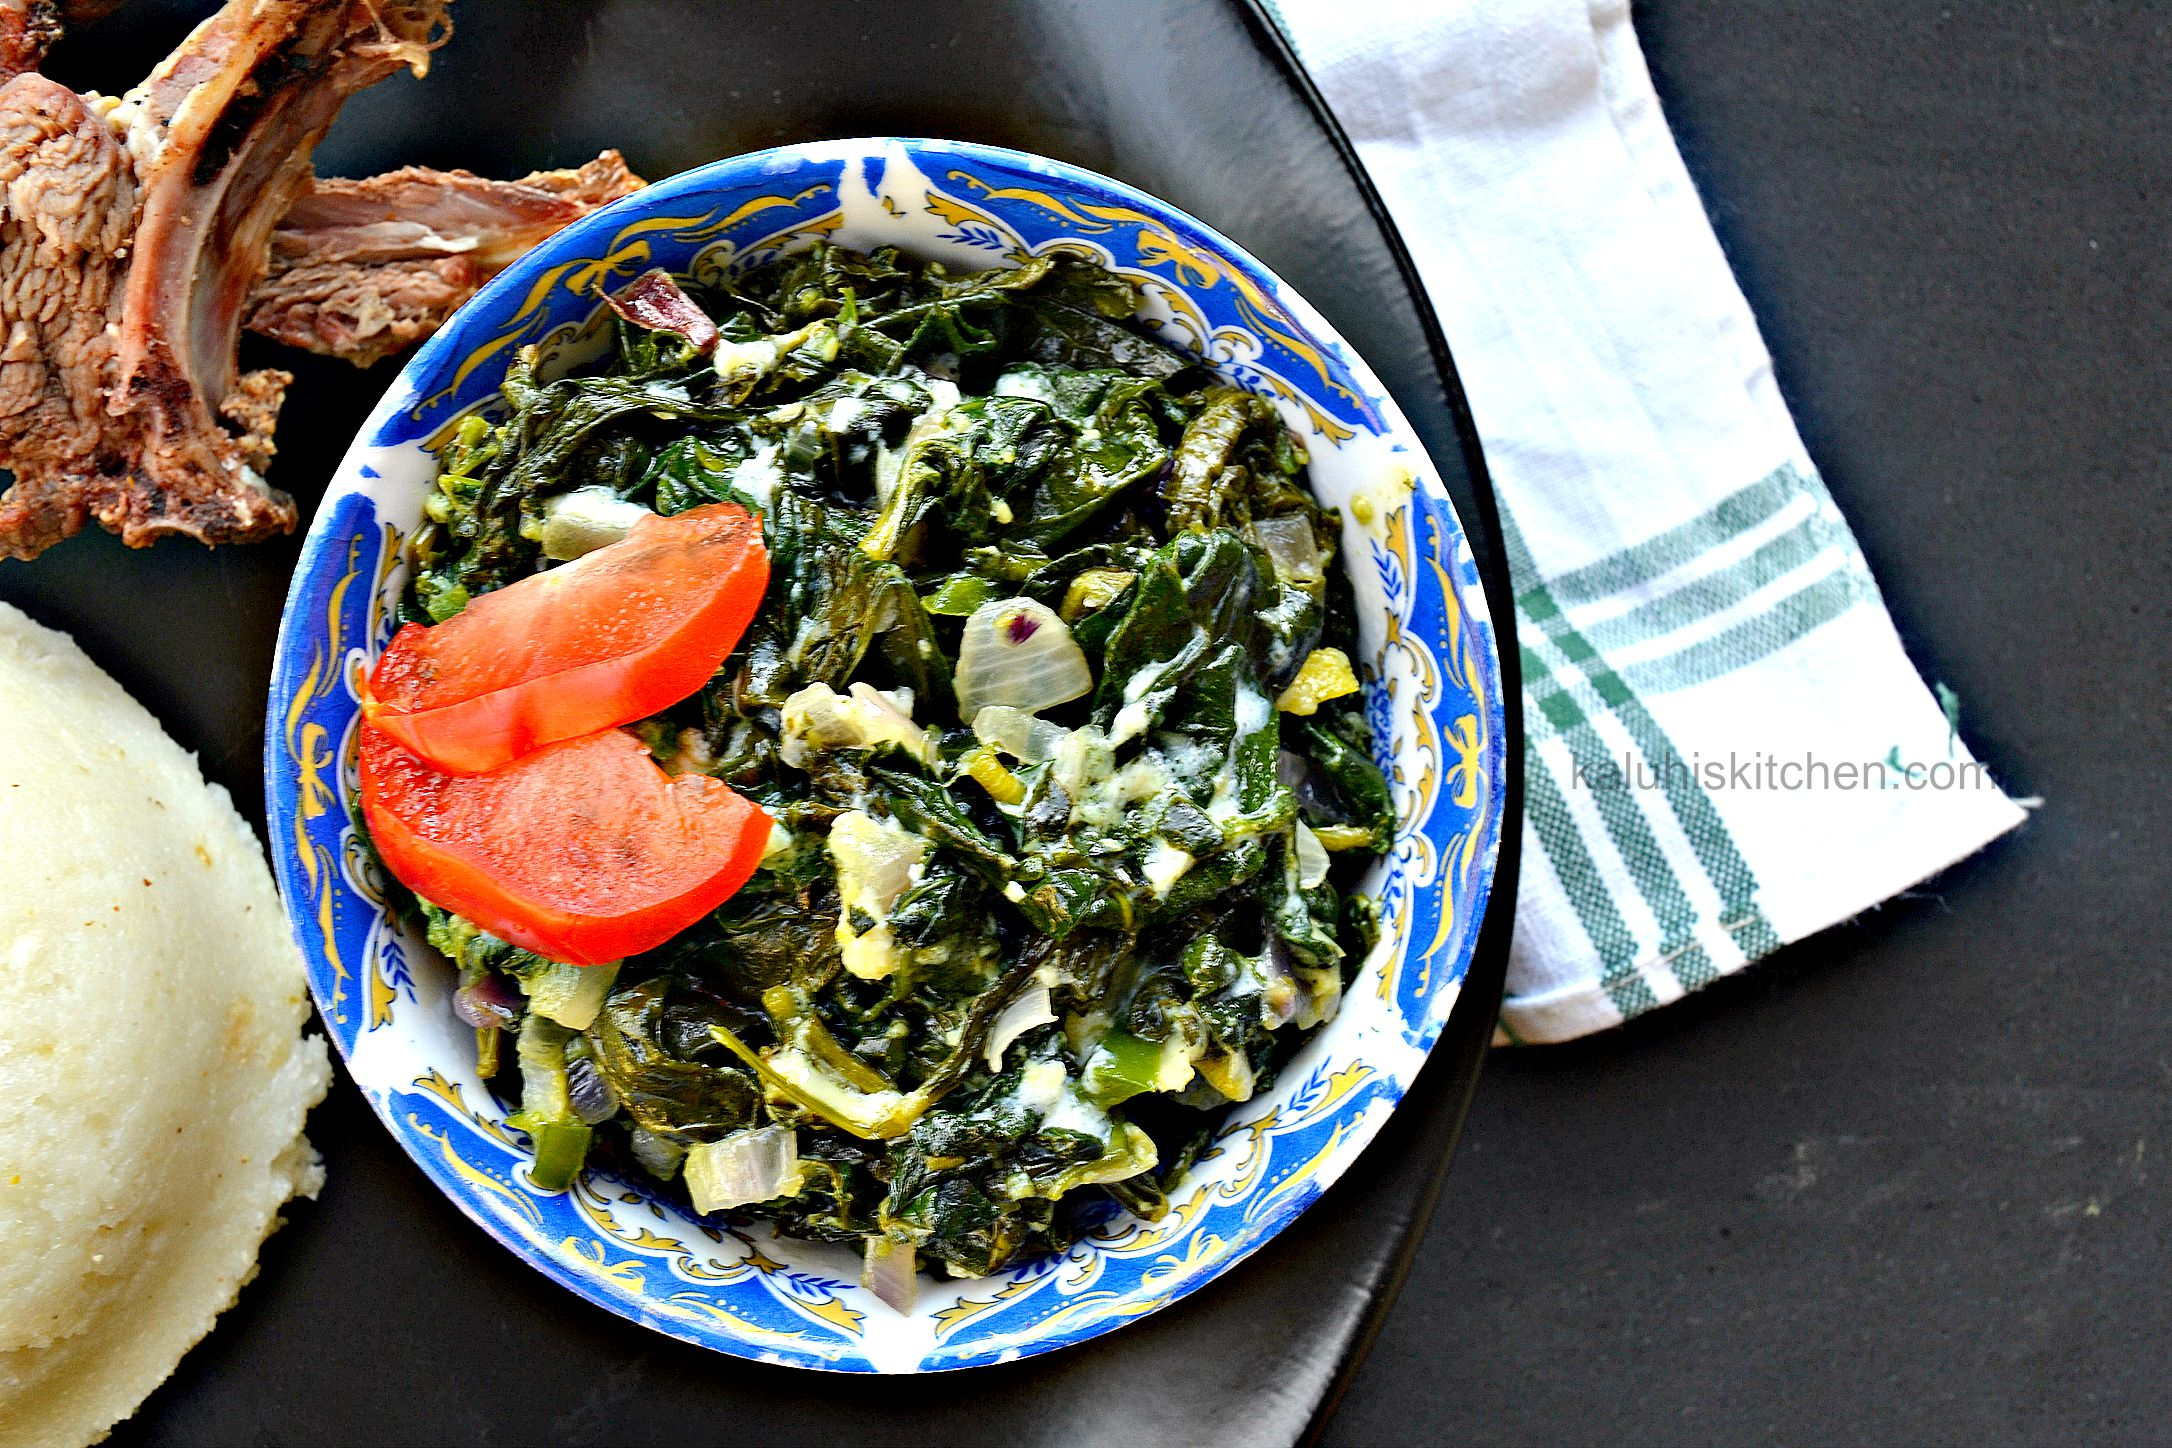 kaluhiskitchen.com_best keyan food blog_how to make kunde_traditional kenyan cuisine_